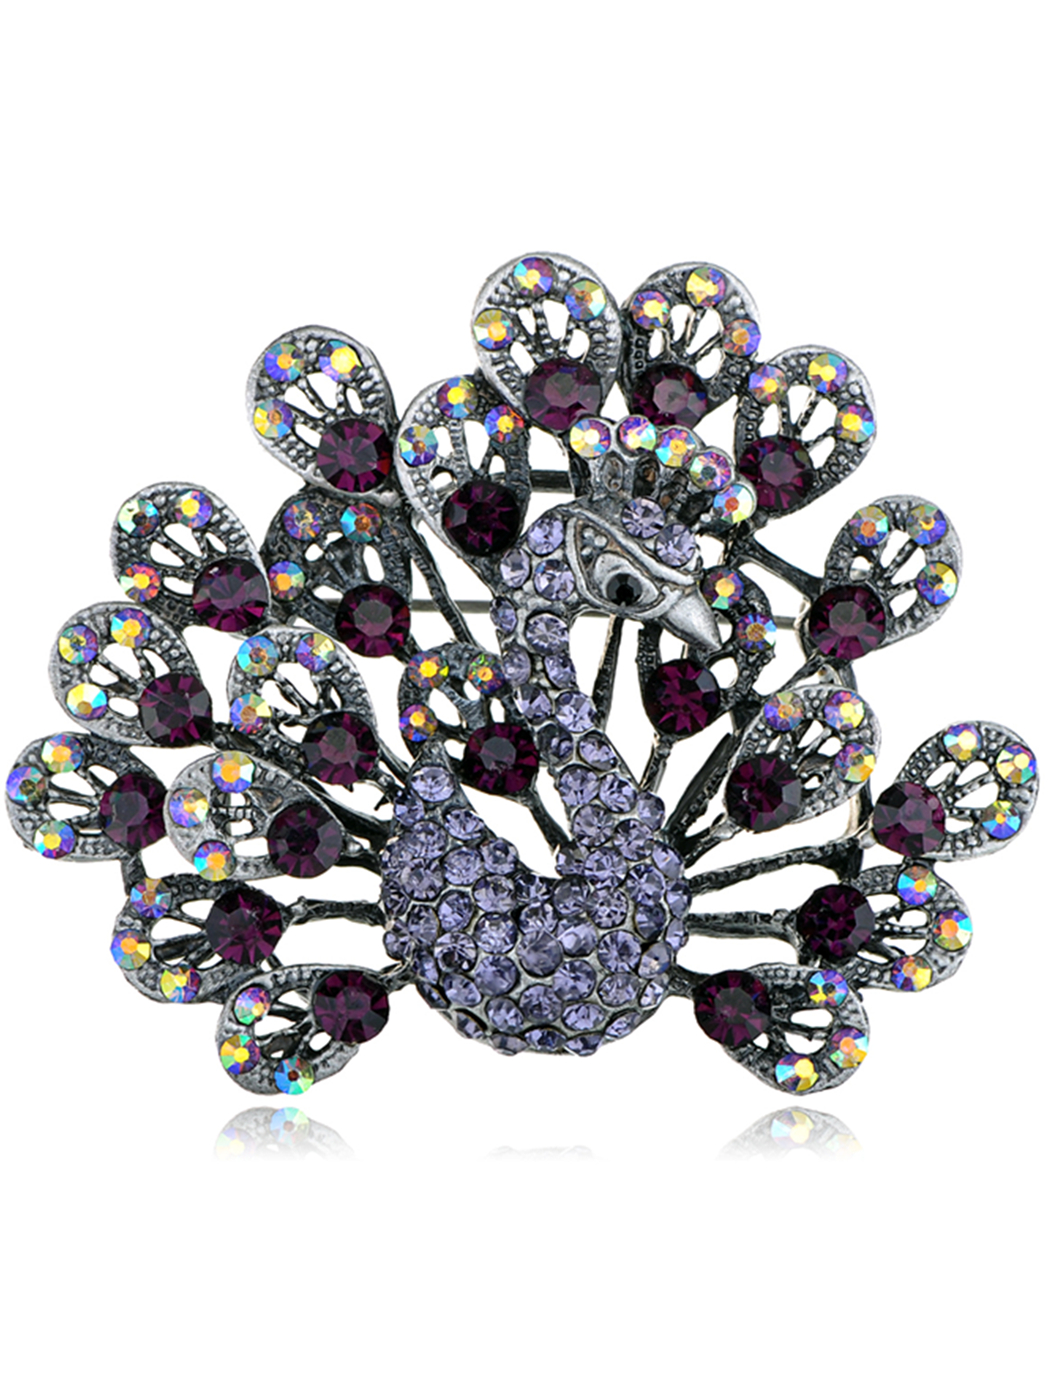 Dark Purple Crystal Rhinestone Peafowl Tail Feathers Peacock Brooch Pin by